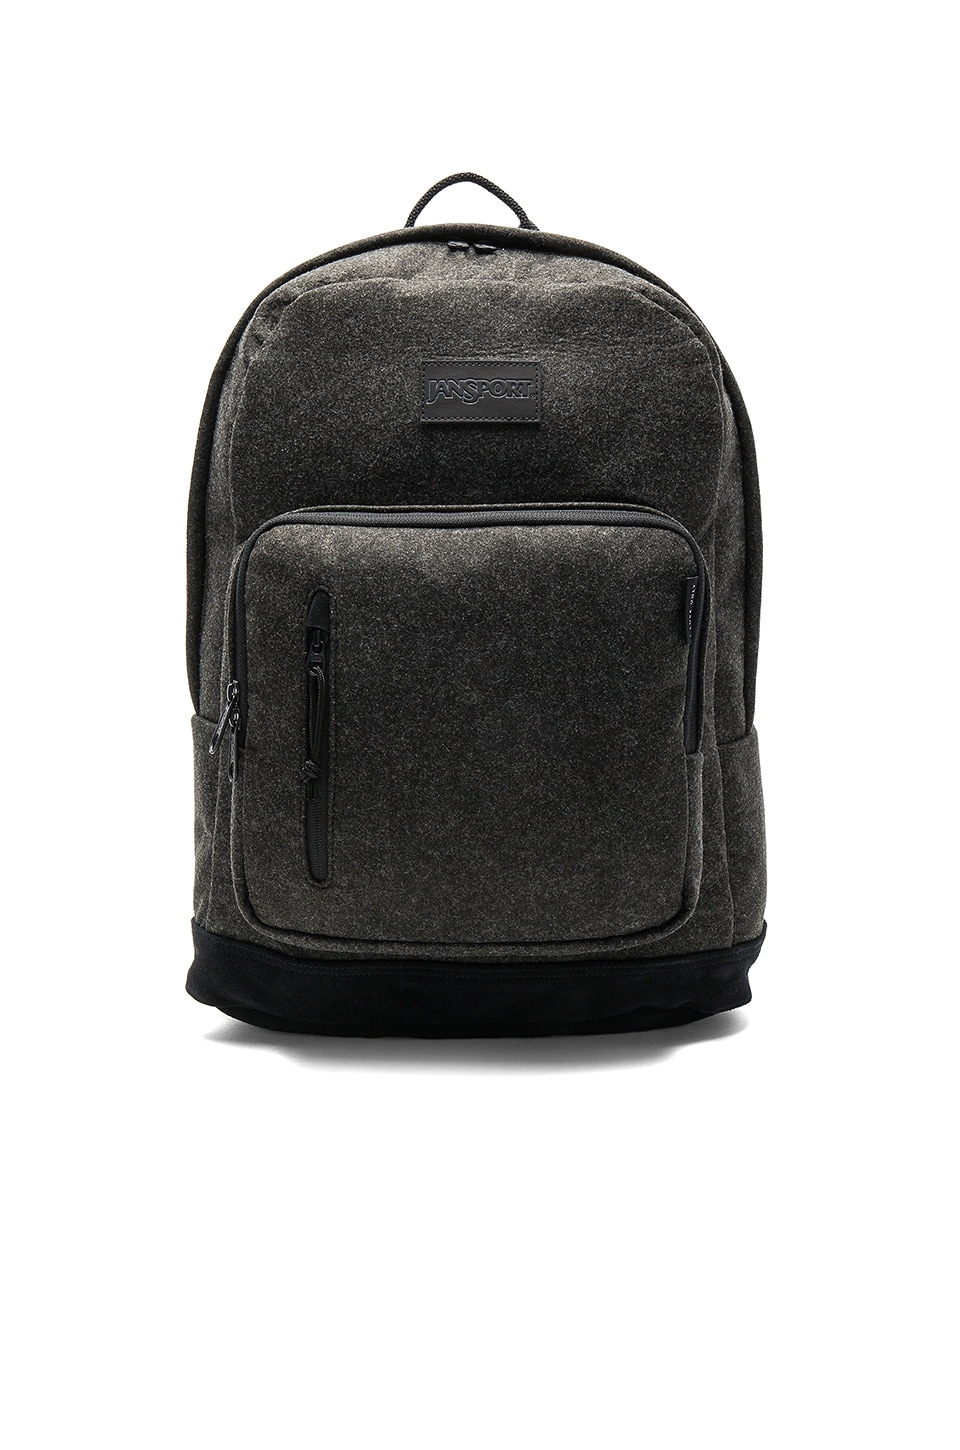 Photo of x I Love Ugly Axiom Backpack by Jansport men clothes